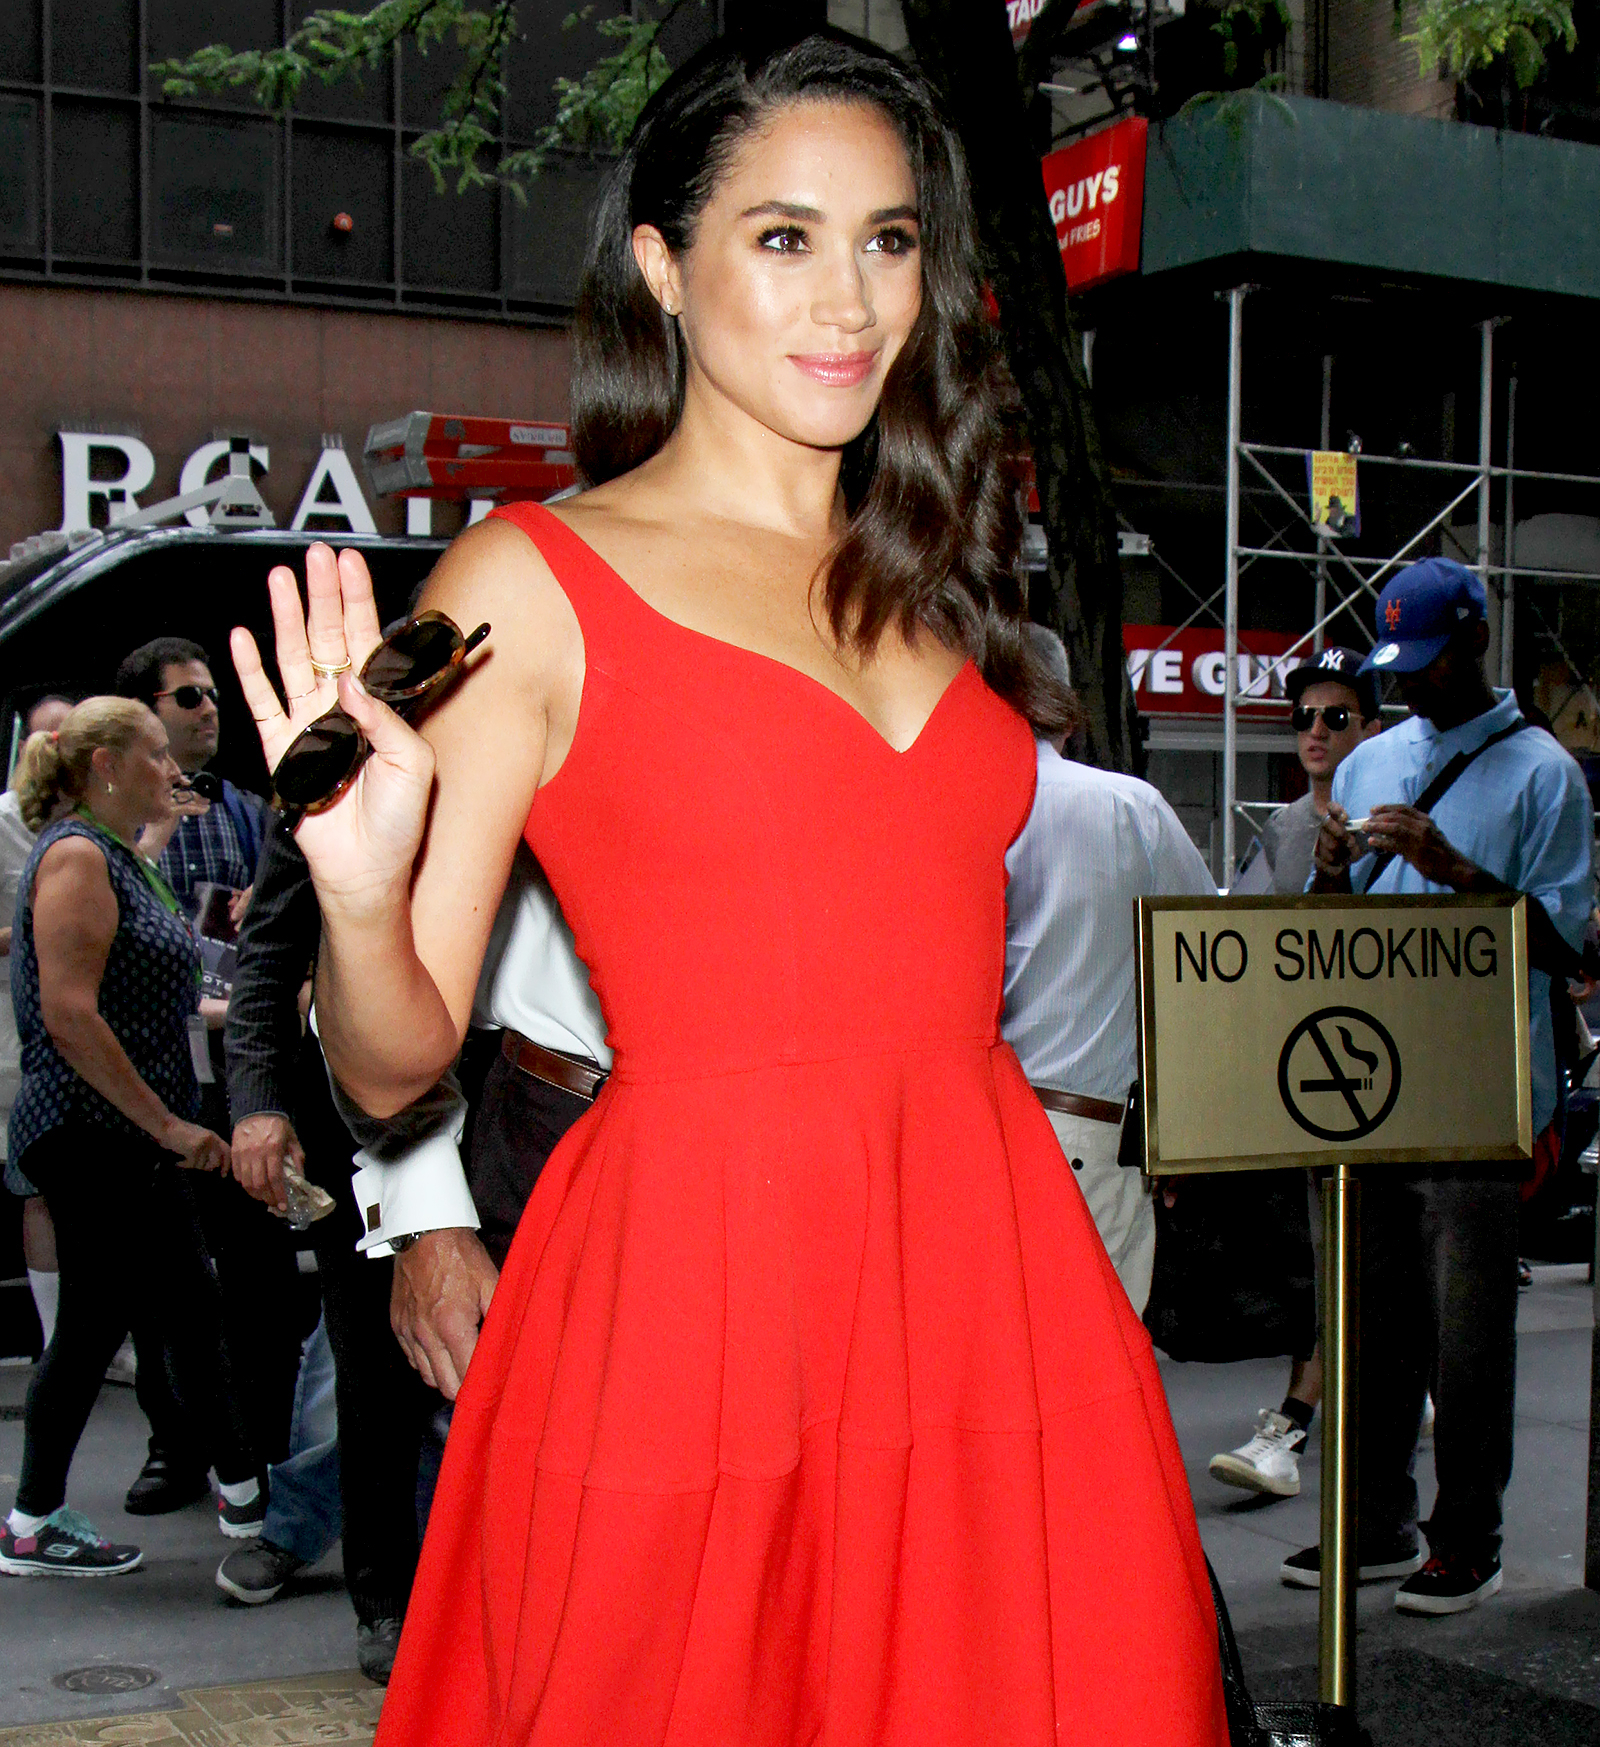 Meghan Markle arrives at NBC Studios in New York City for an appearance on 'The Today Show' July 14, 2016.